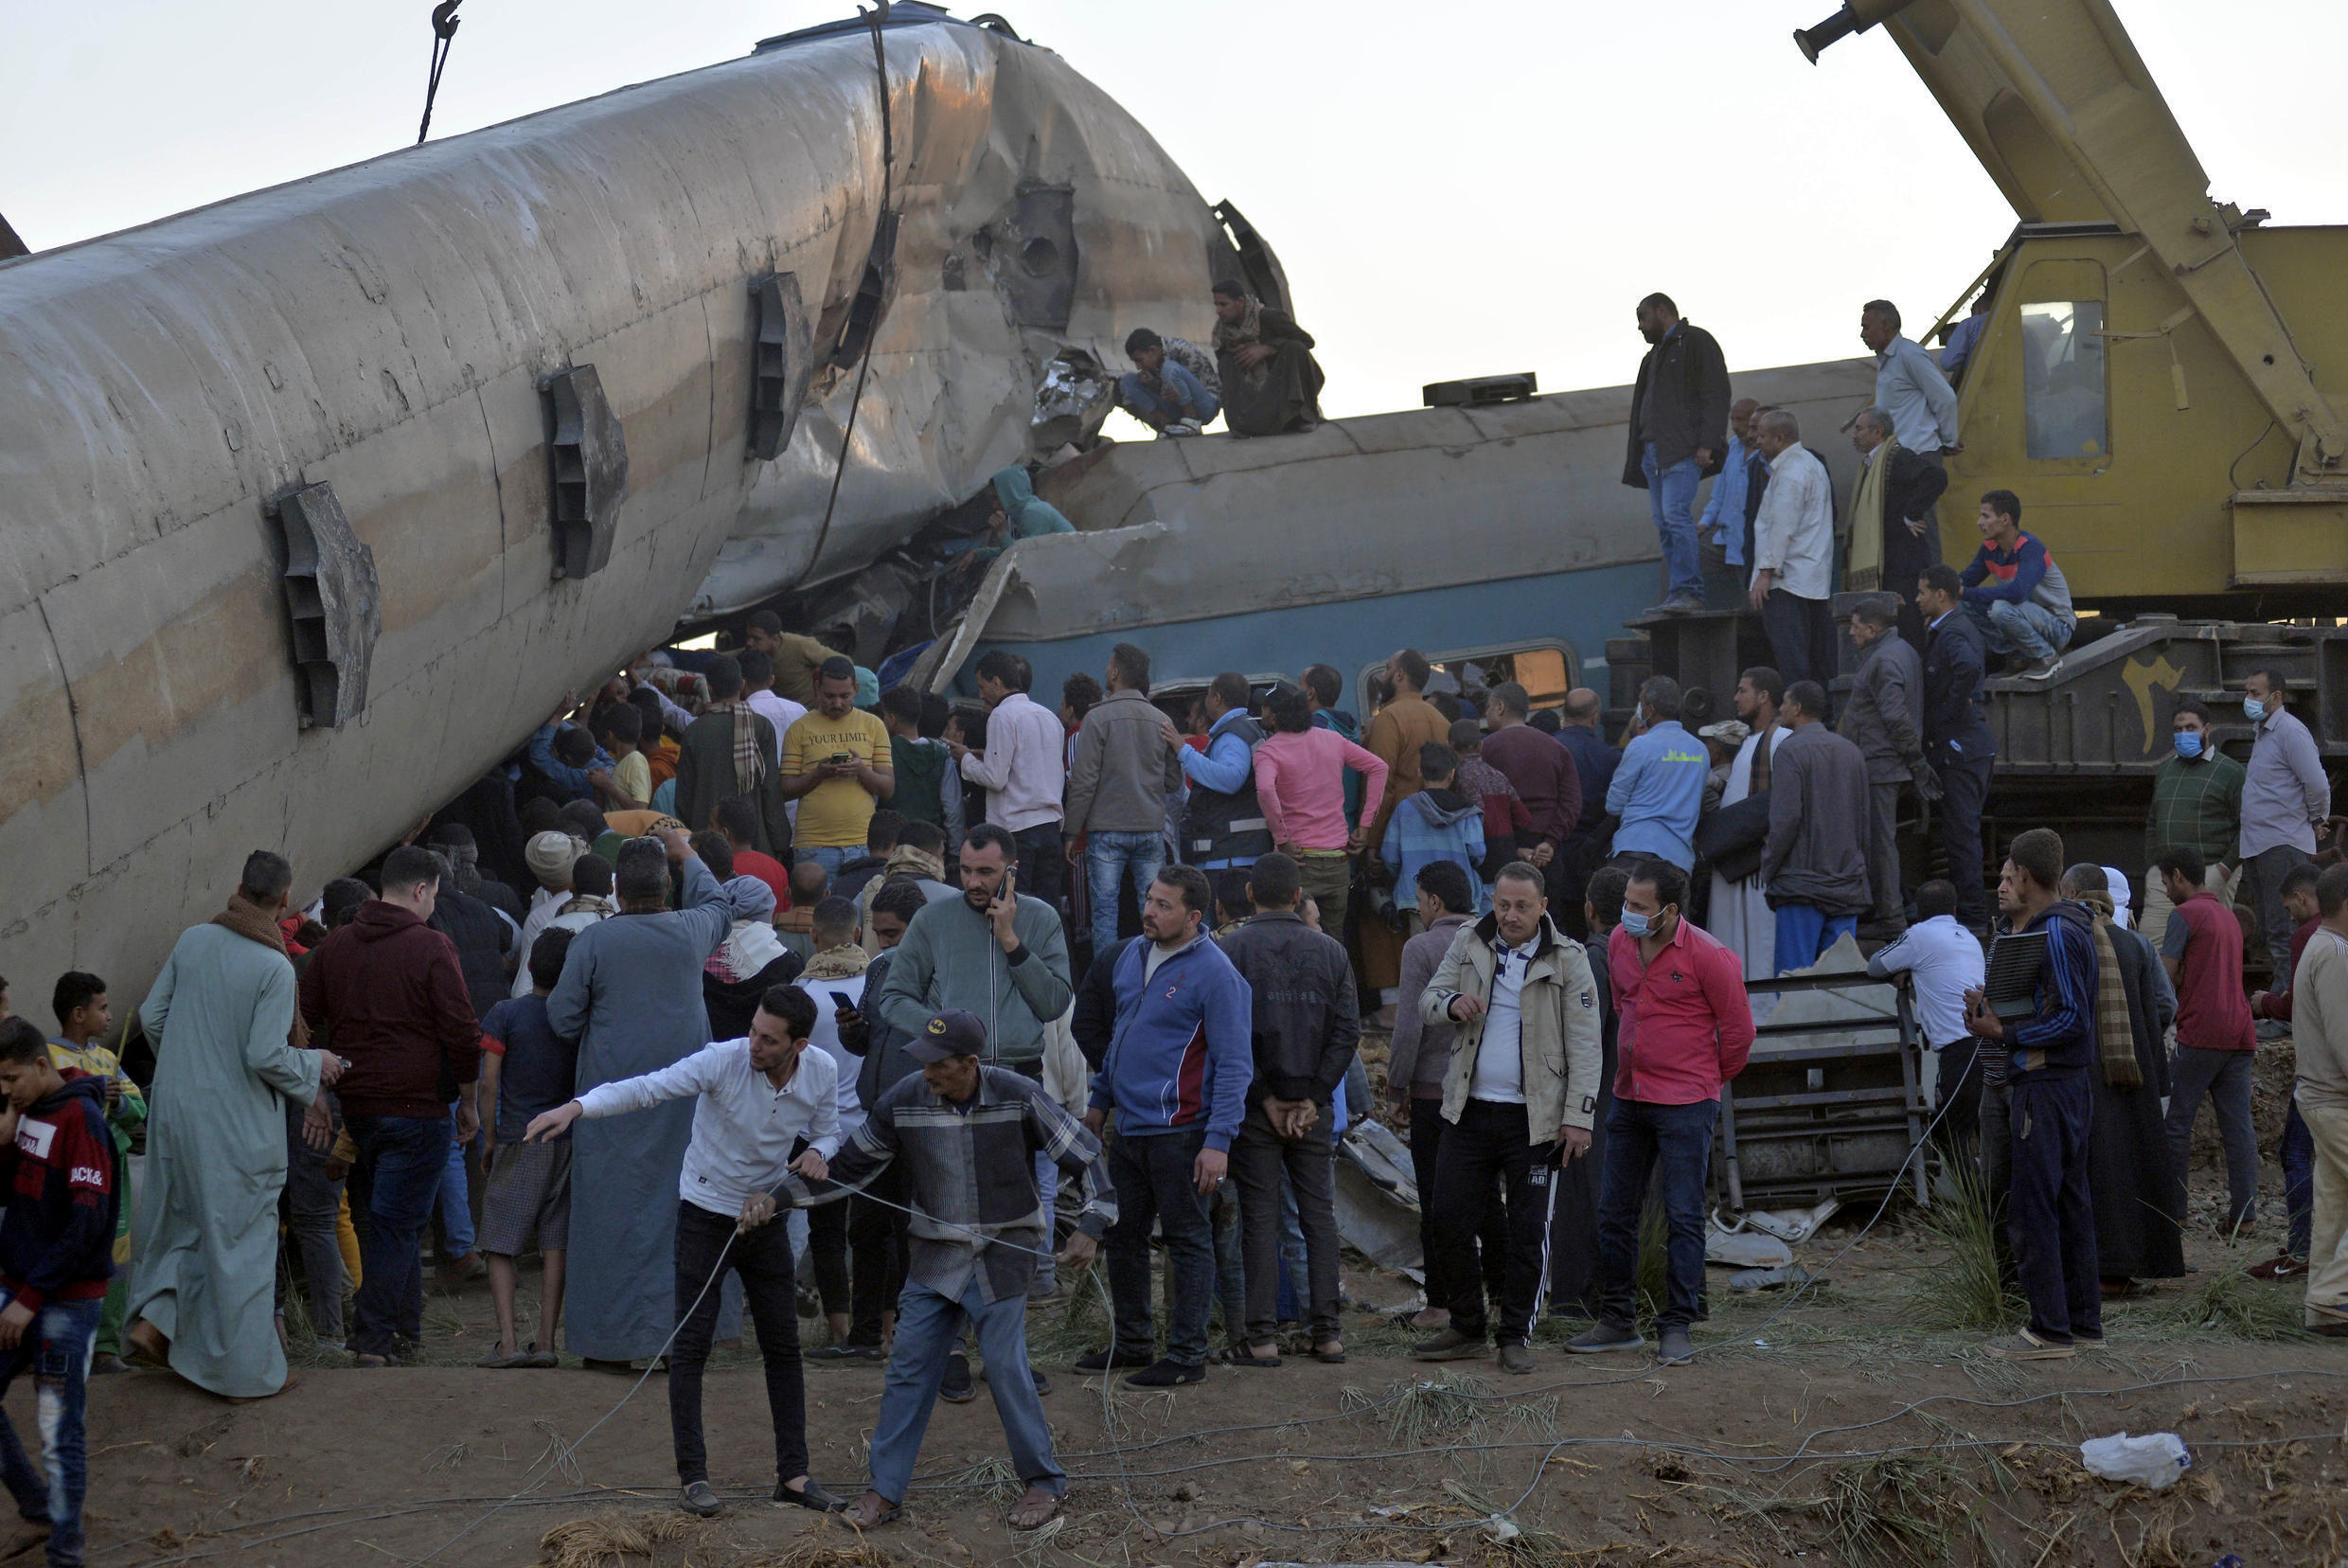 People gather around the wreckage of two trains that collided some 460 kilometres (285 miles) south of the Egyptian capital Cairo, on March 26